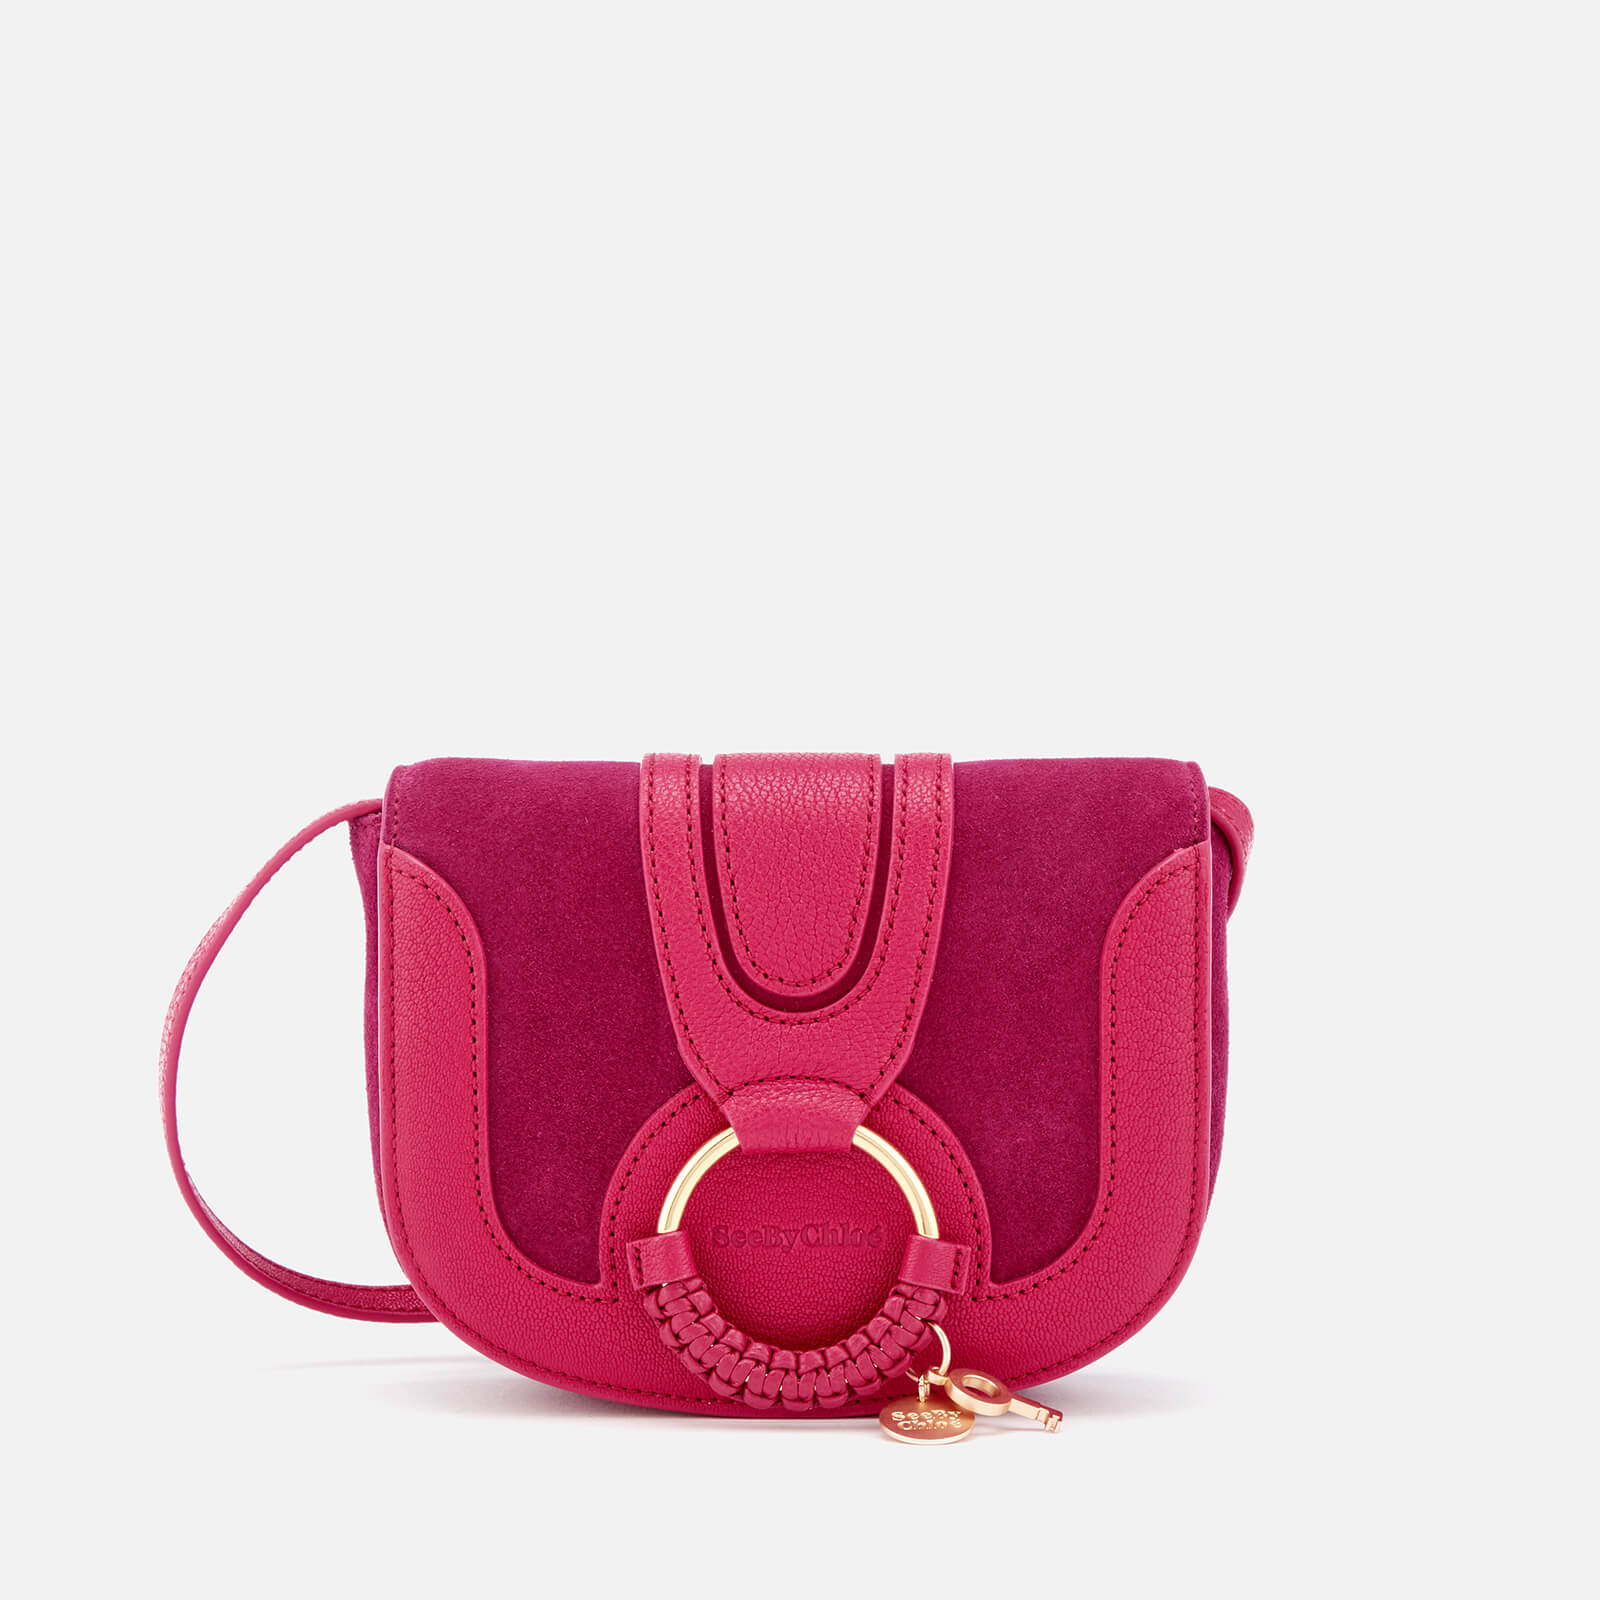 850b84e5e62e See By Chloé Women s Hana Small Cross Body Bag - Berry Pink - Free UK  Delivery over £50